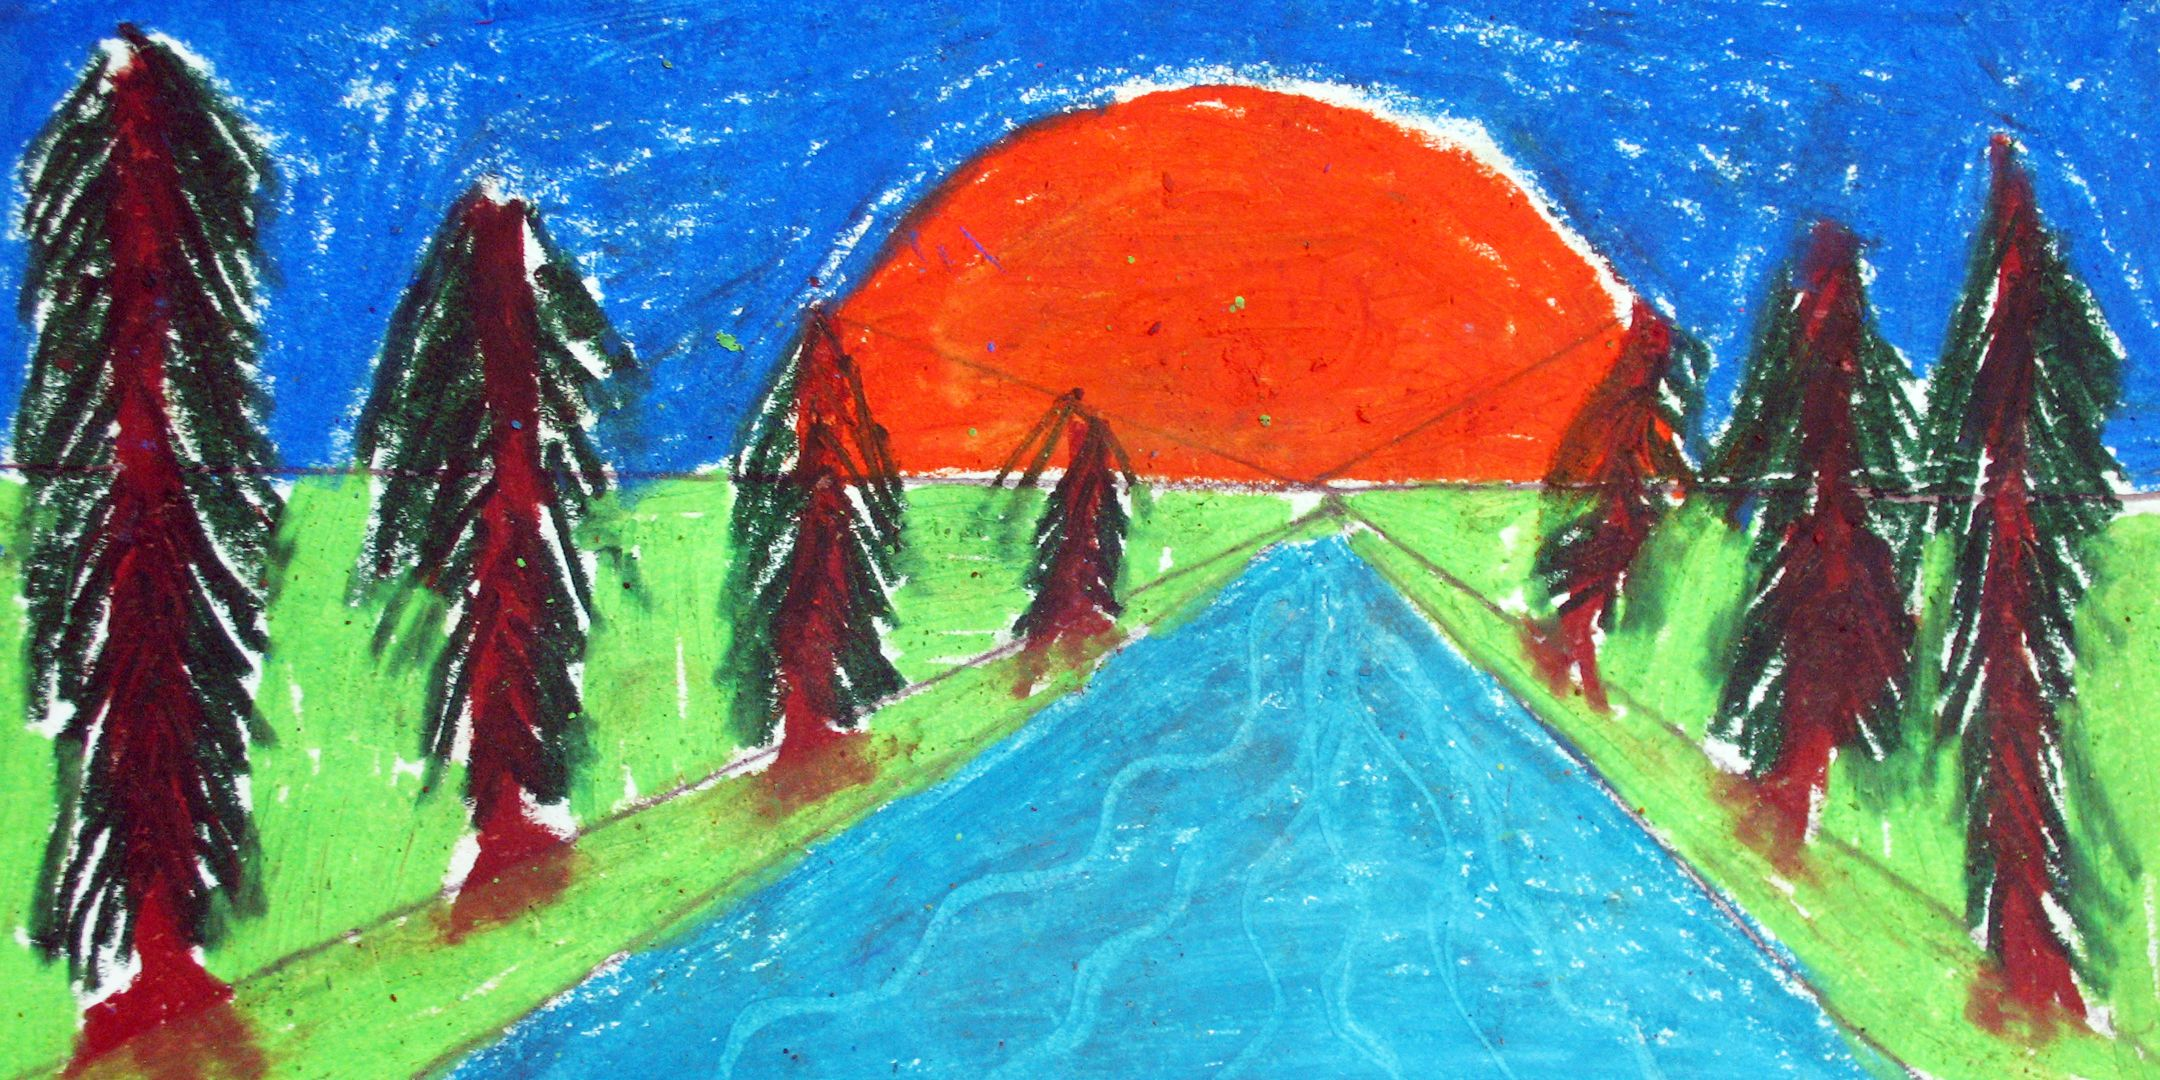 Pin By Art In Action On Nature Landscape Oil Pastel Landscape Pastel Landscape Oil Pastel